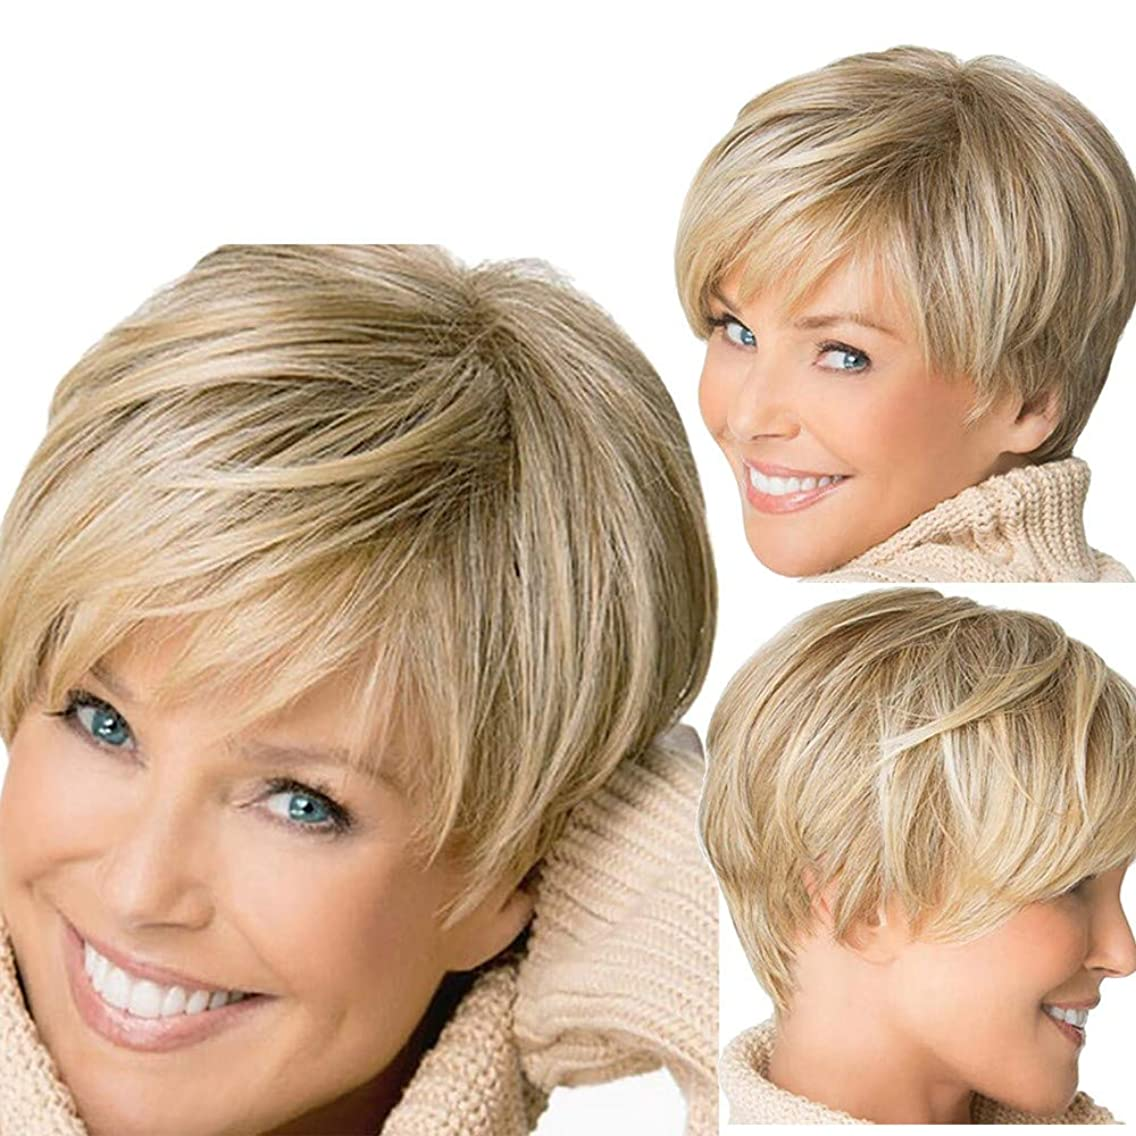 Hot Sale! Short Wigs,Women Fashion Straight Synthetic Hair Full Wigs Natural Looking Heat Resistant Gold Wig (Gold)